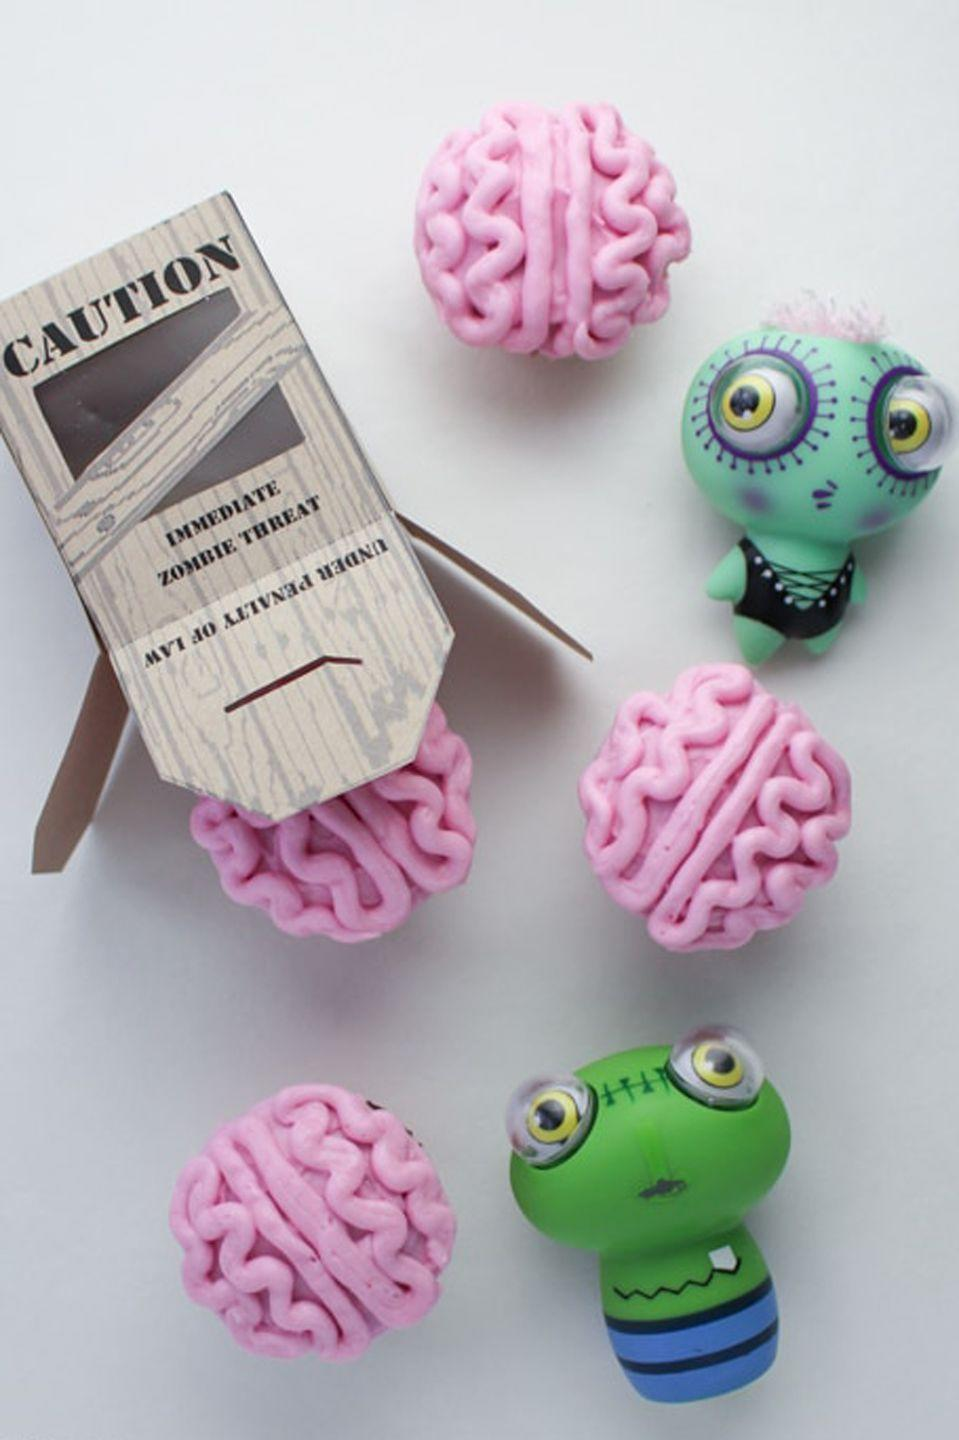 """<p><em>Walking Dead</em> fans, these brainy cupcakes are practically made for you.</p><p><em><a href=""""https://brendid.com/all-natural-zombie-brain-cupcakes/"""" rel=""""nofollow noopener"""" target=""""_blank"""" data-ylk=""""slk:Get the recipe at Brendid »"""" class=""""link rapid-noclick-resp"""">Get the recipe at Brendid »</a></em></p>"""